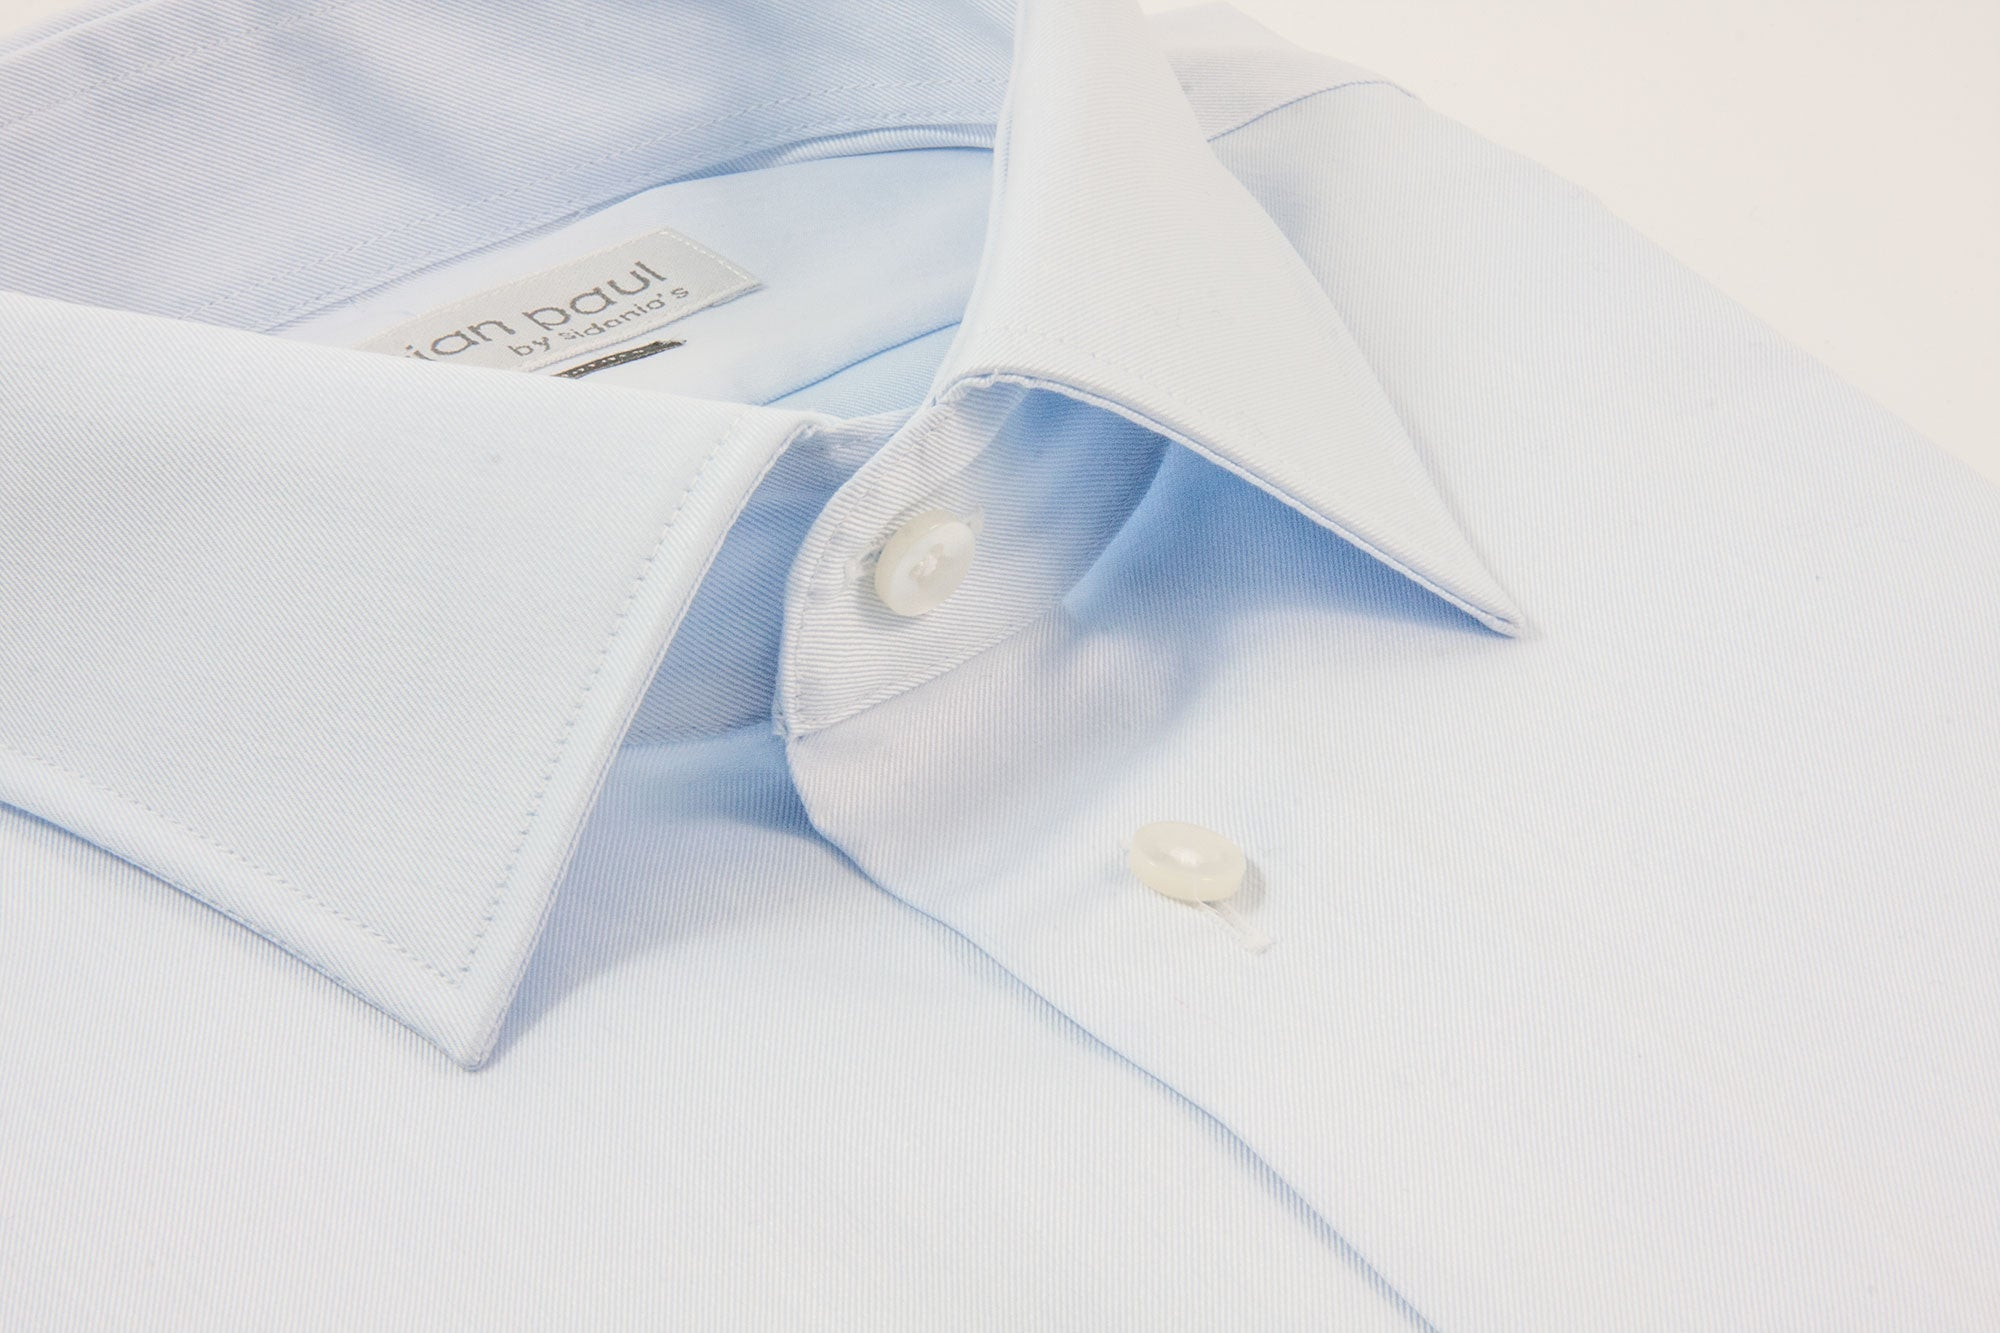 CHRISTIAN PAUL by sidonio's CONTEMPORARY FIT LIGHT BLUE DRESS SHIRT